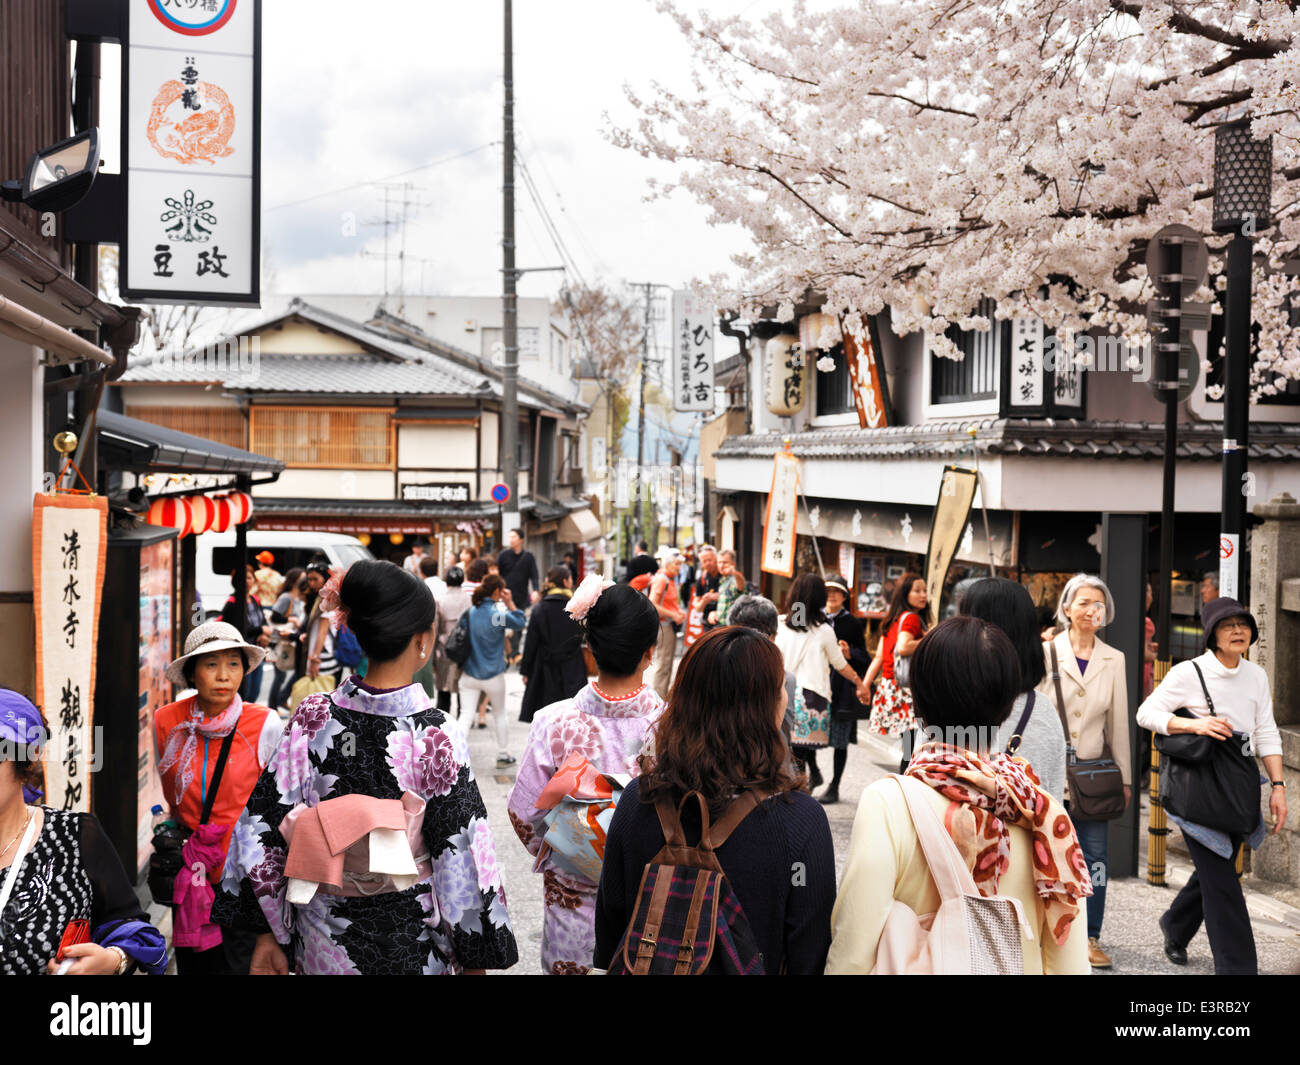 Matsubara-dori street filled with people during cherry blossom season in Higashiyama, Kyoto, Japan 2014. Stock Photo